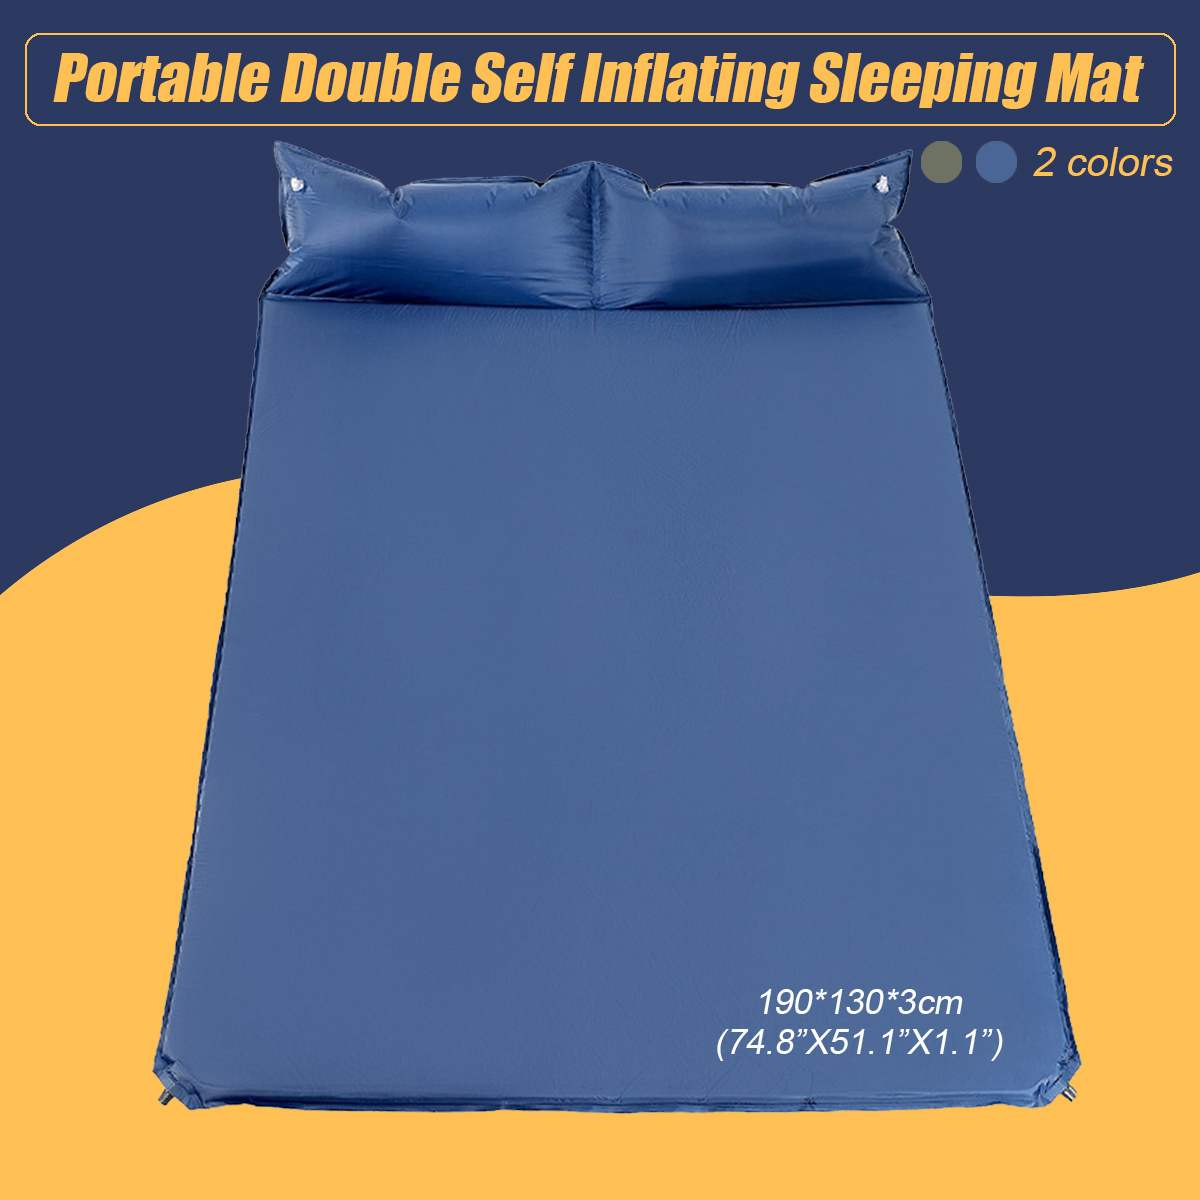 Portable Double Self Inflating Camping Camp Sleeping Mat Pad Cushion Polyester Dampproof Hiking Mattress Pillows 190*130*3cm